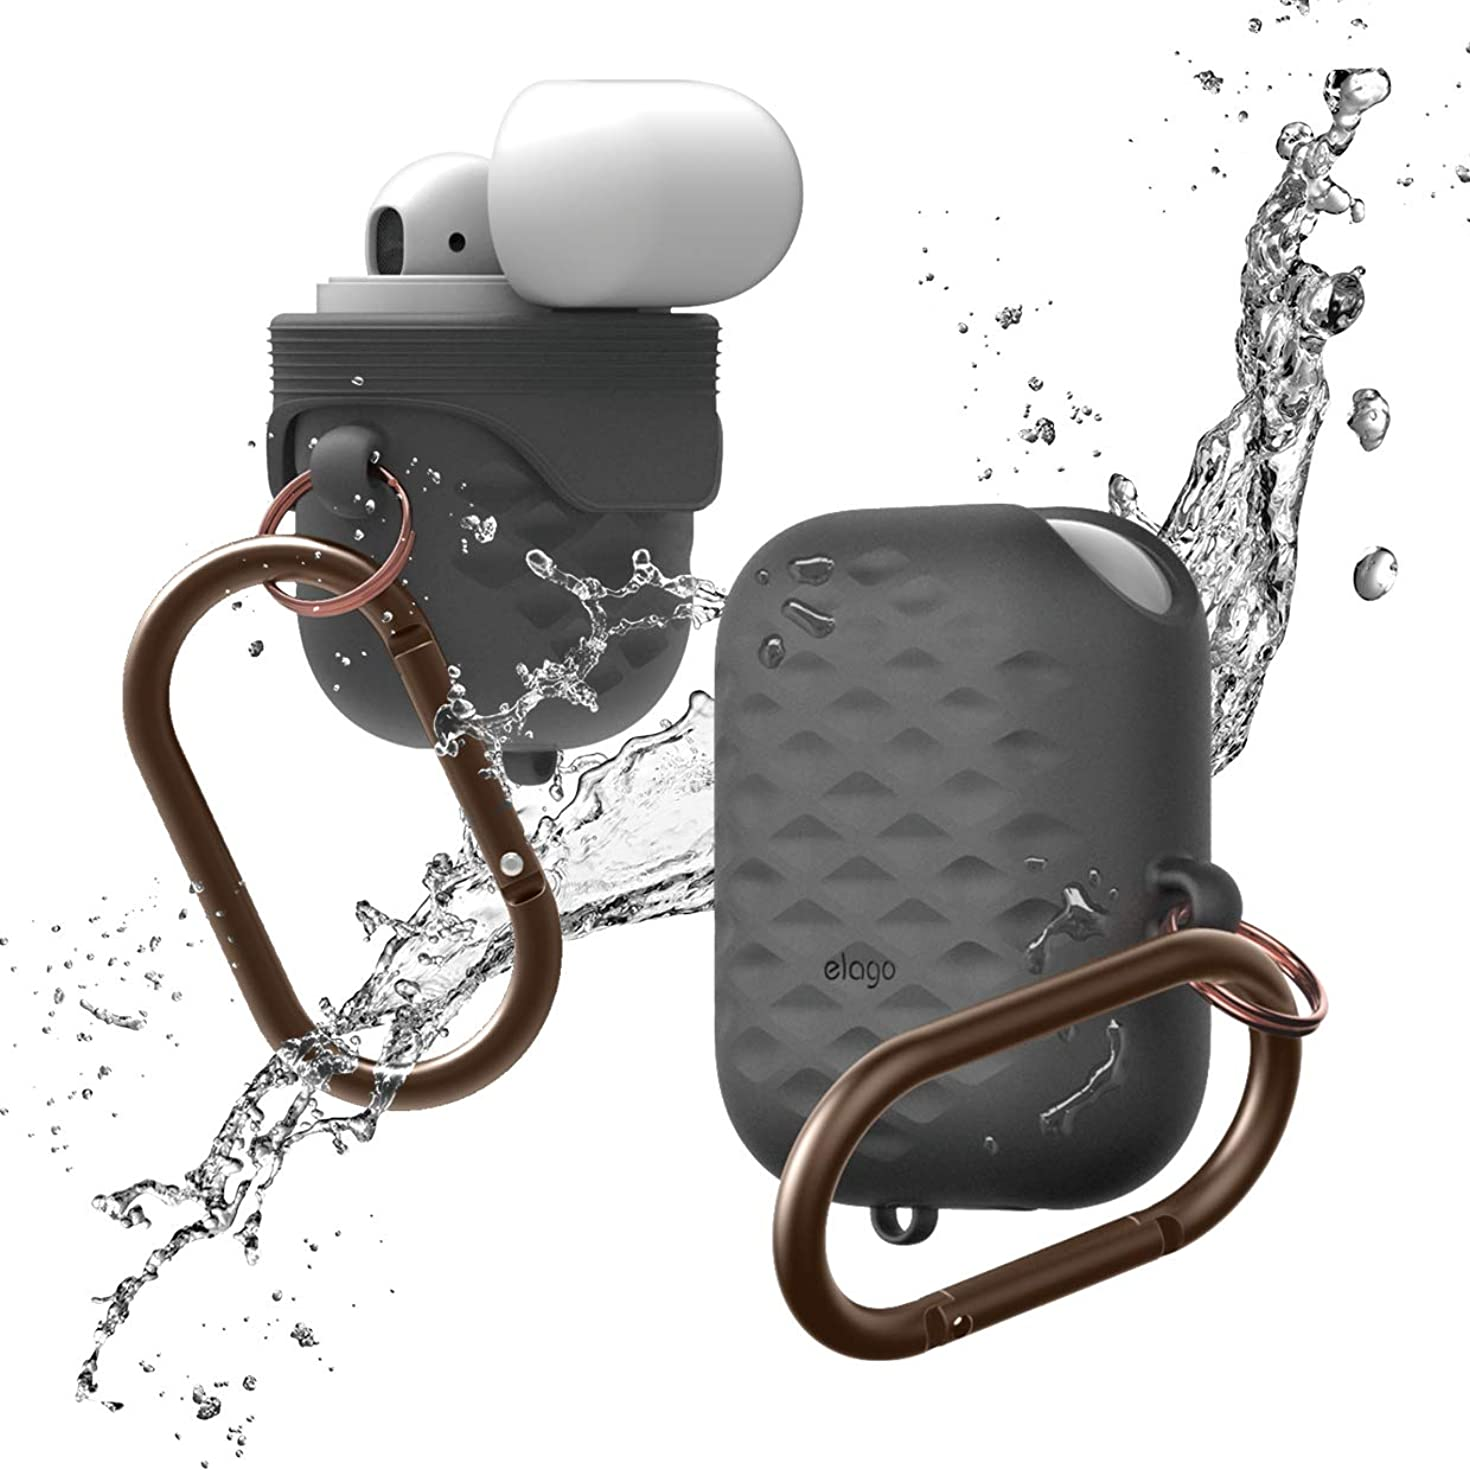 elago AirPods Waterproof Hang Active Case [Dark Grey] - [Compatible with Apple AirPods 1 & 2][Supports Wireless Charging][Waterproof][Dust Proof][Added Carabiner] - for AirPods 1 & 2